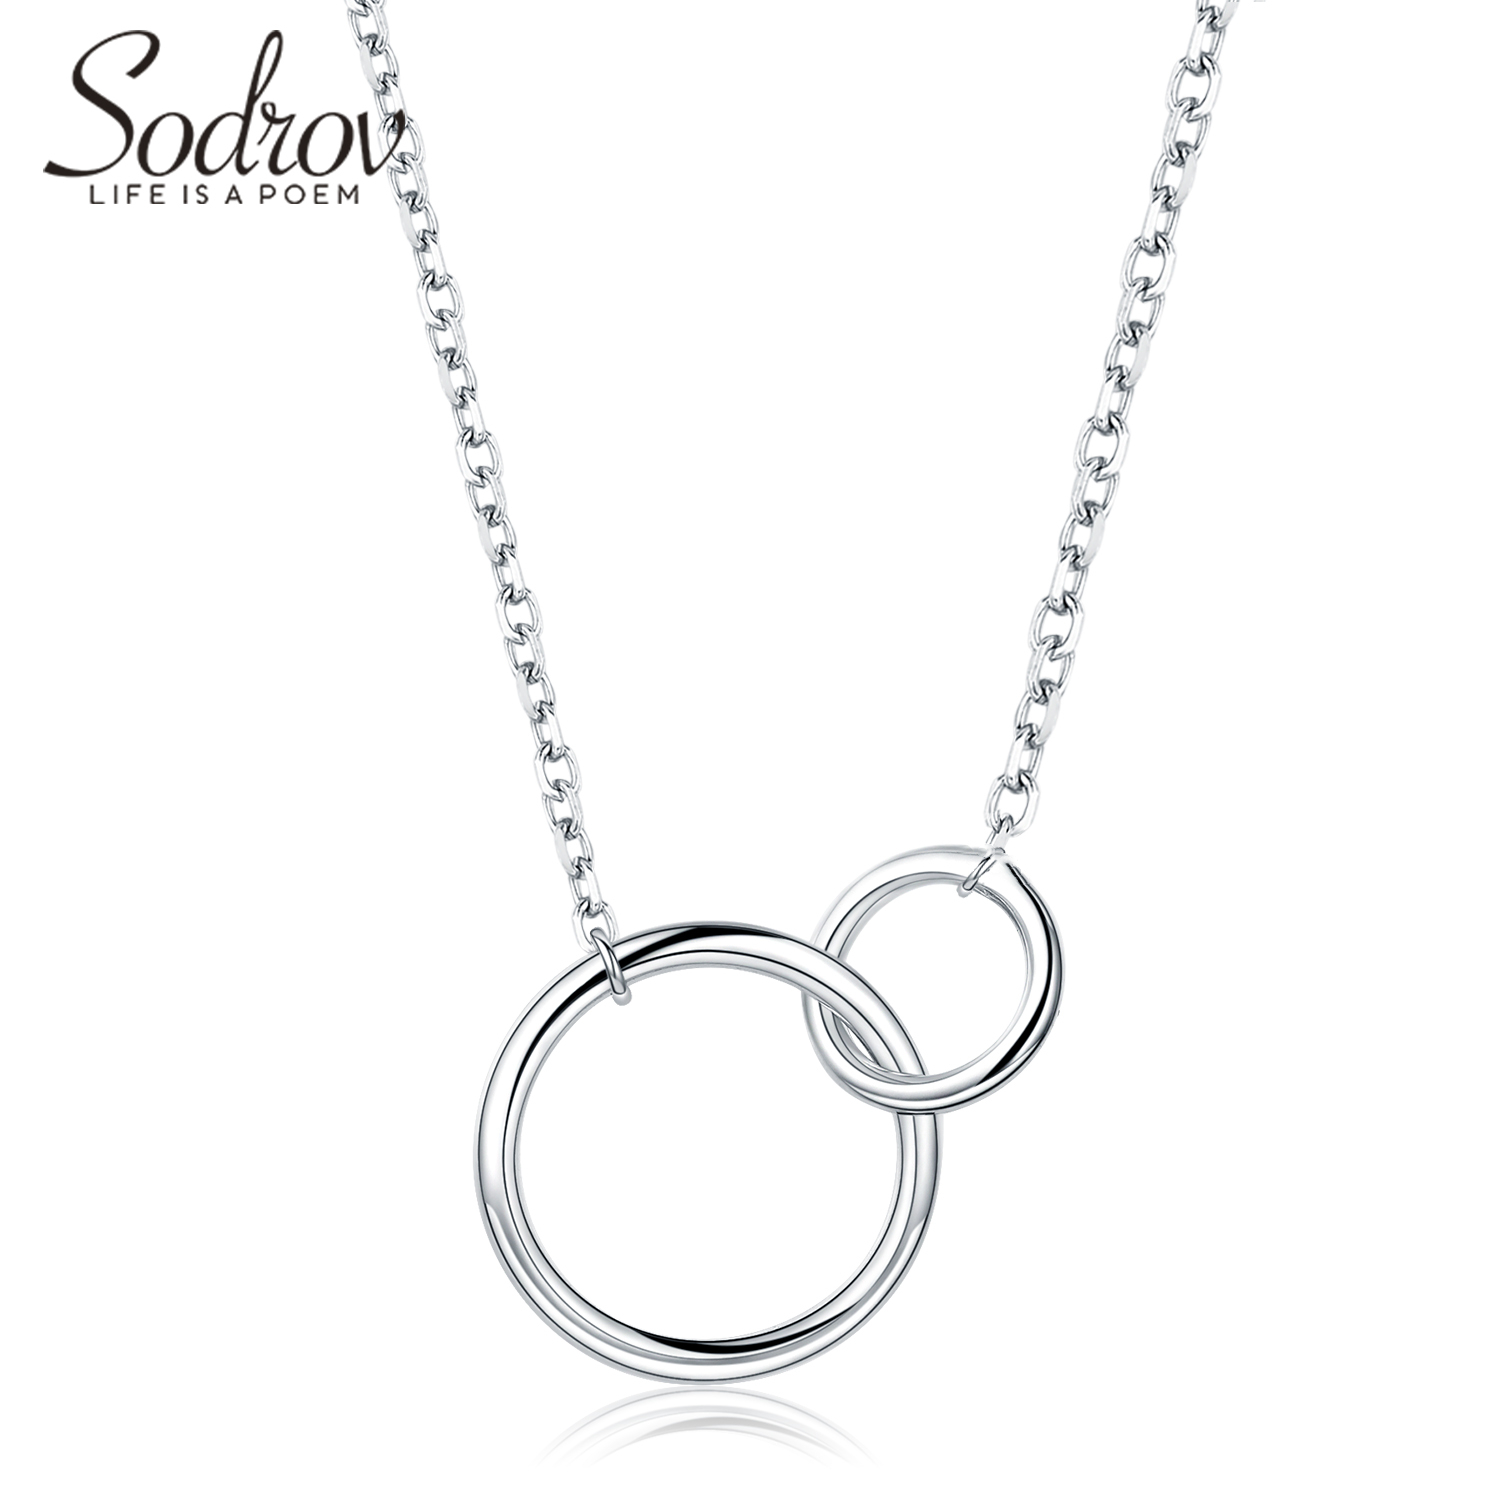 Sodrov Necklace Chain Jewelry Sterling Silver Elegant Fashion Ladies Link Women Round Fine Party